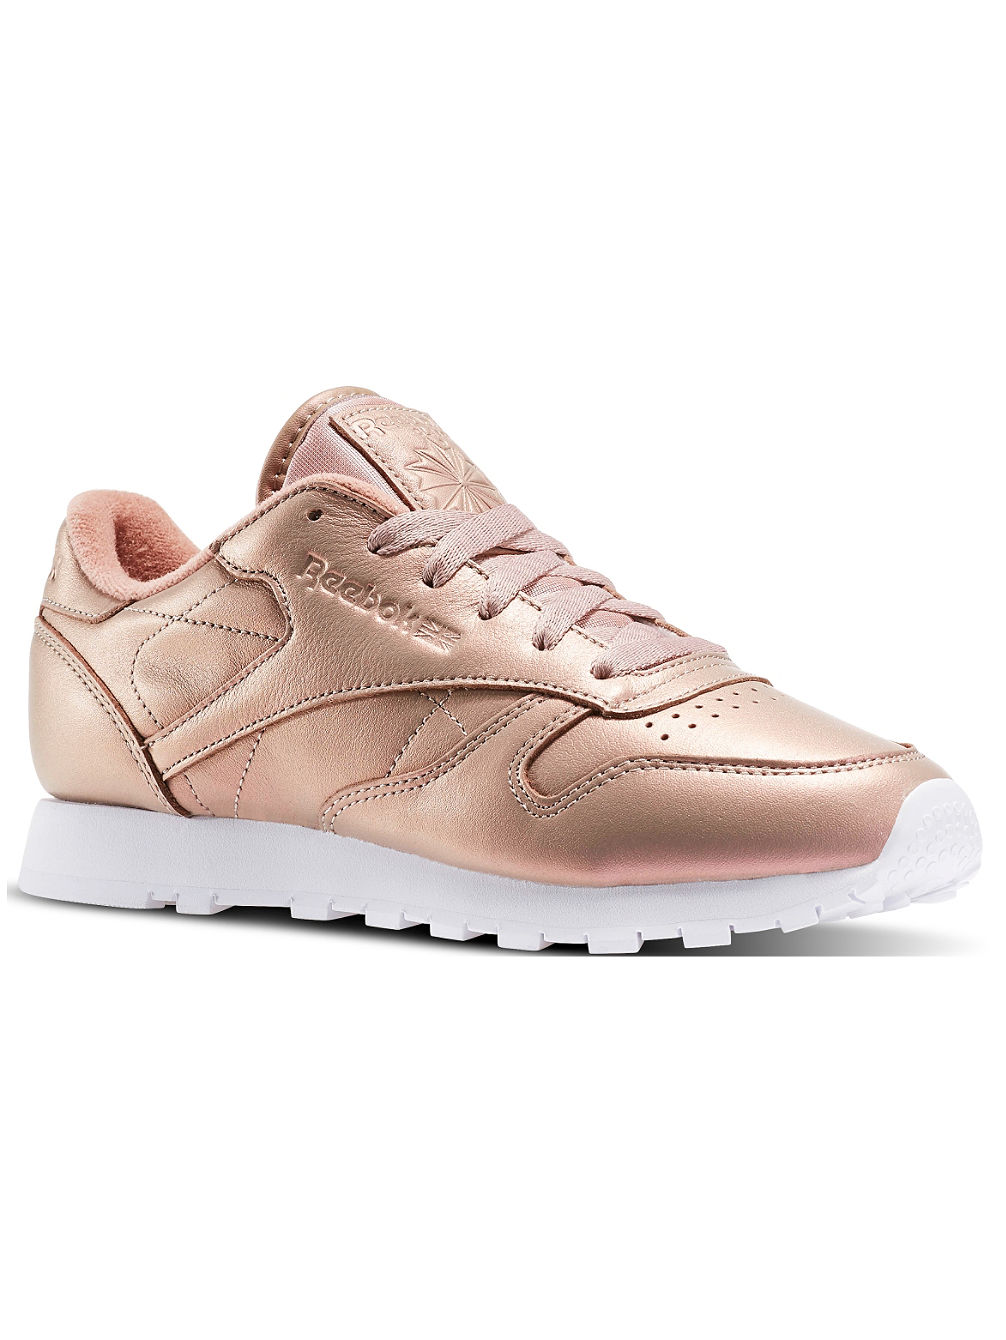 reebok-classic-leather-pearlized-sneakers-women